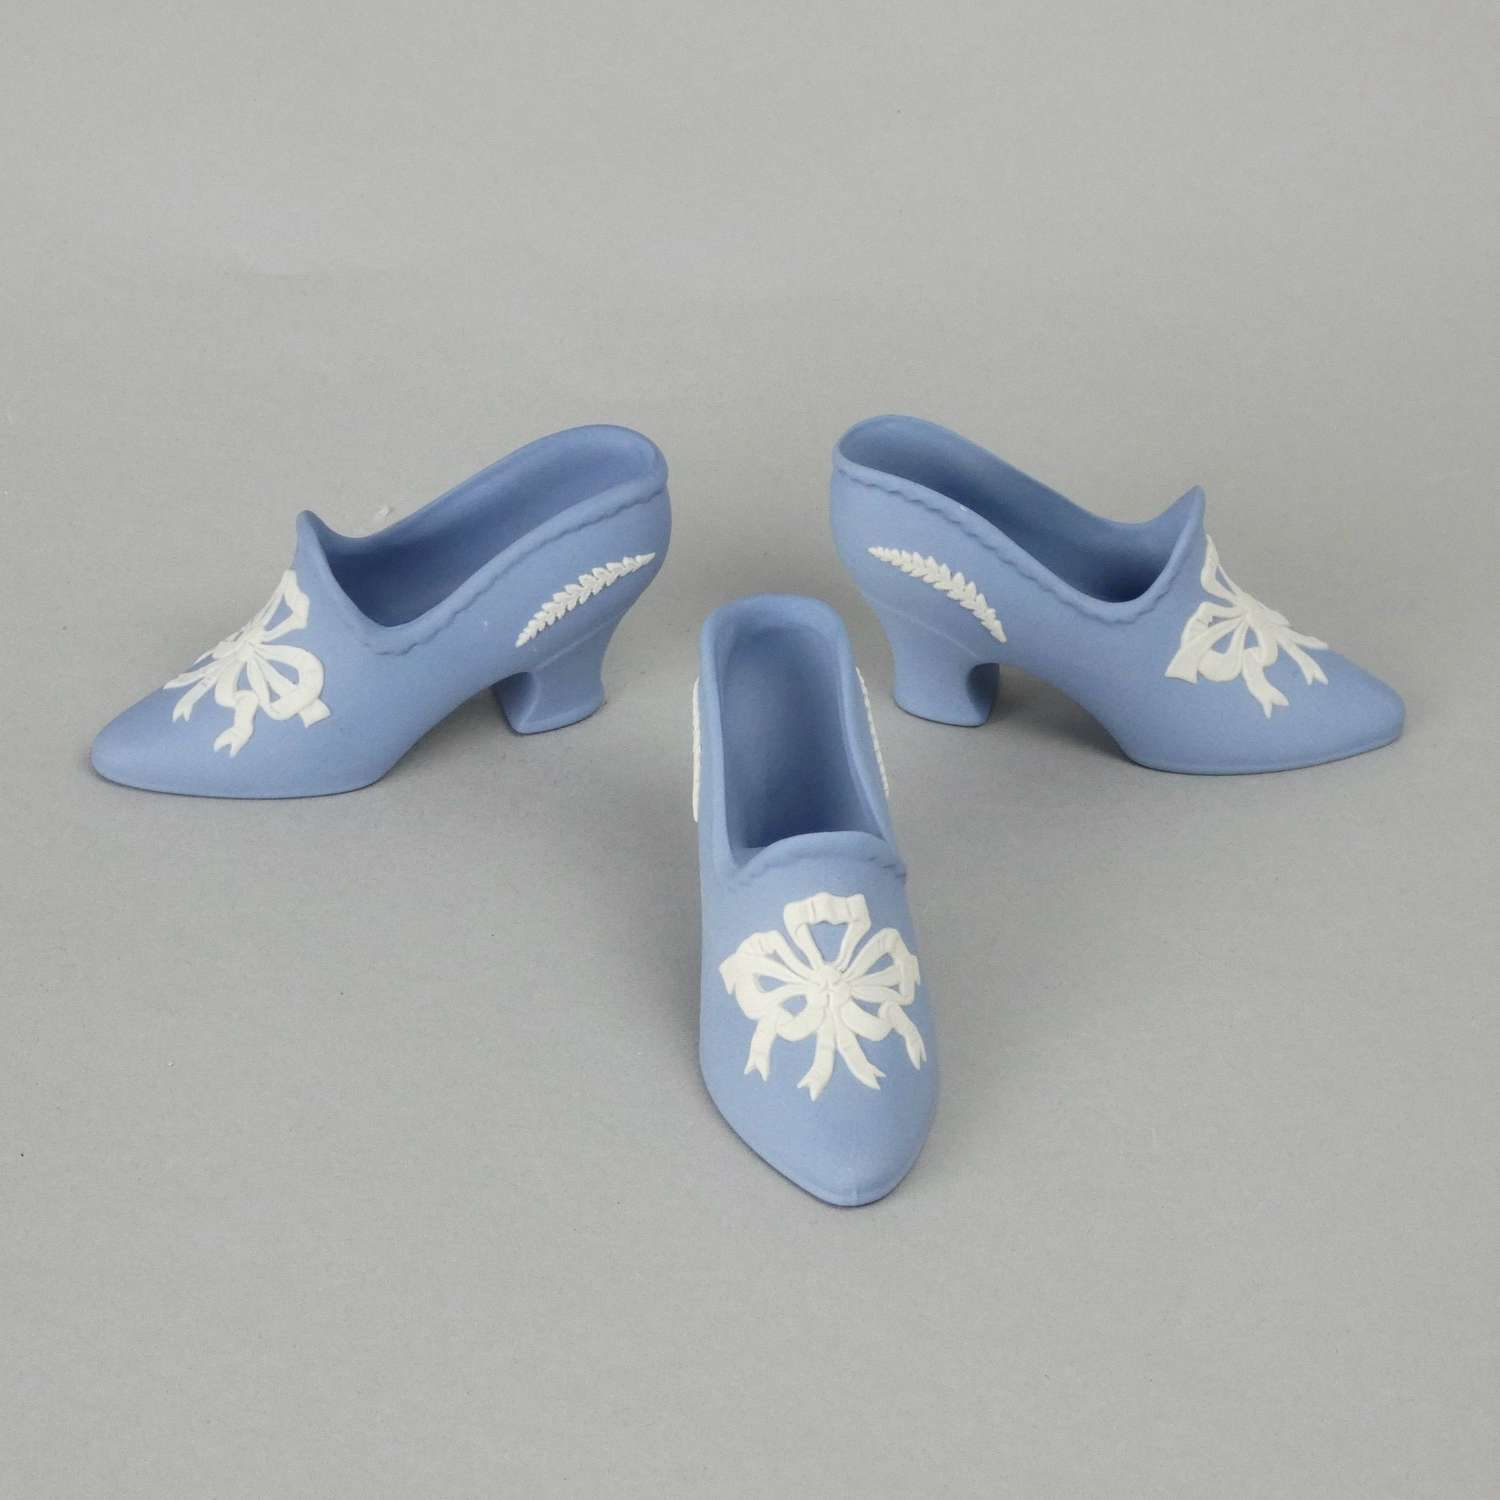 3 Wedgwood miniature shoes